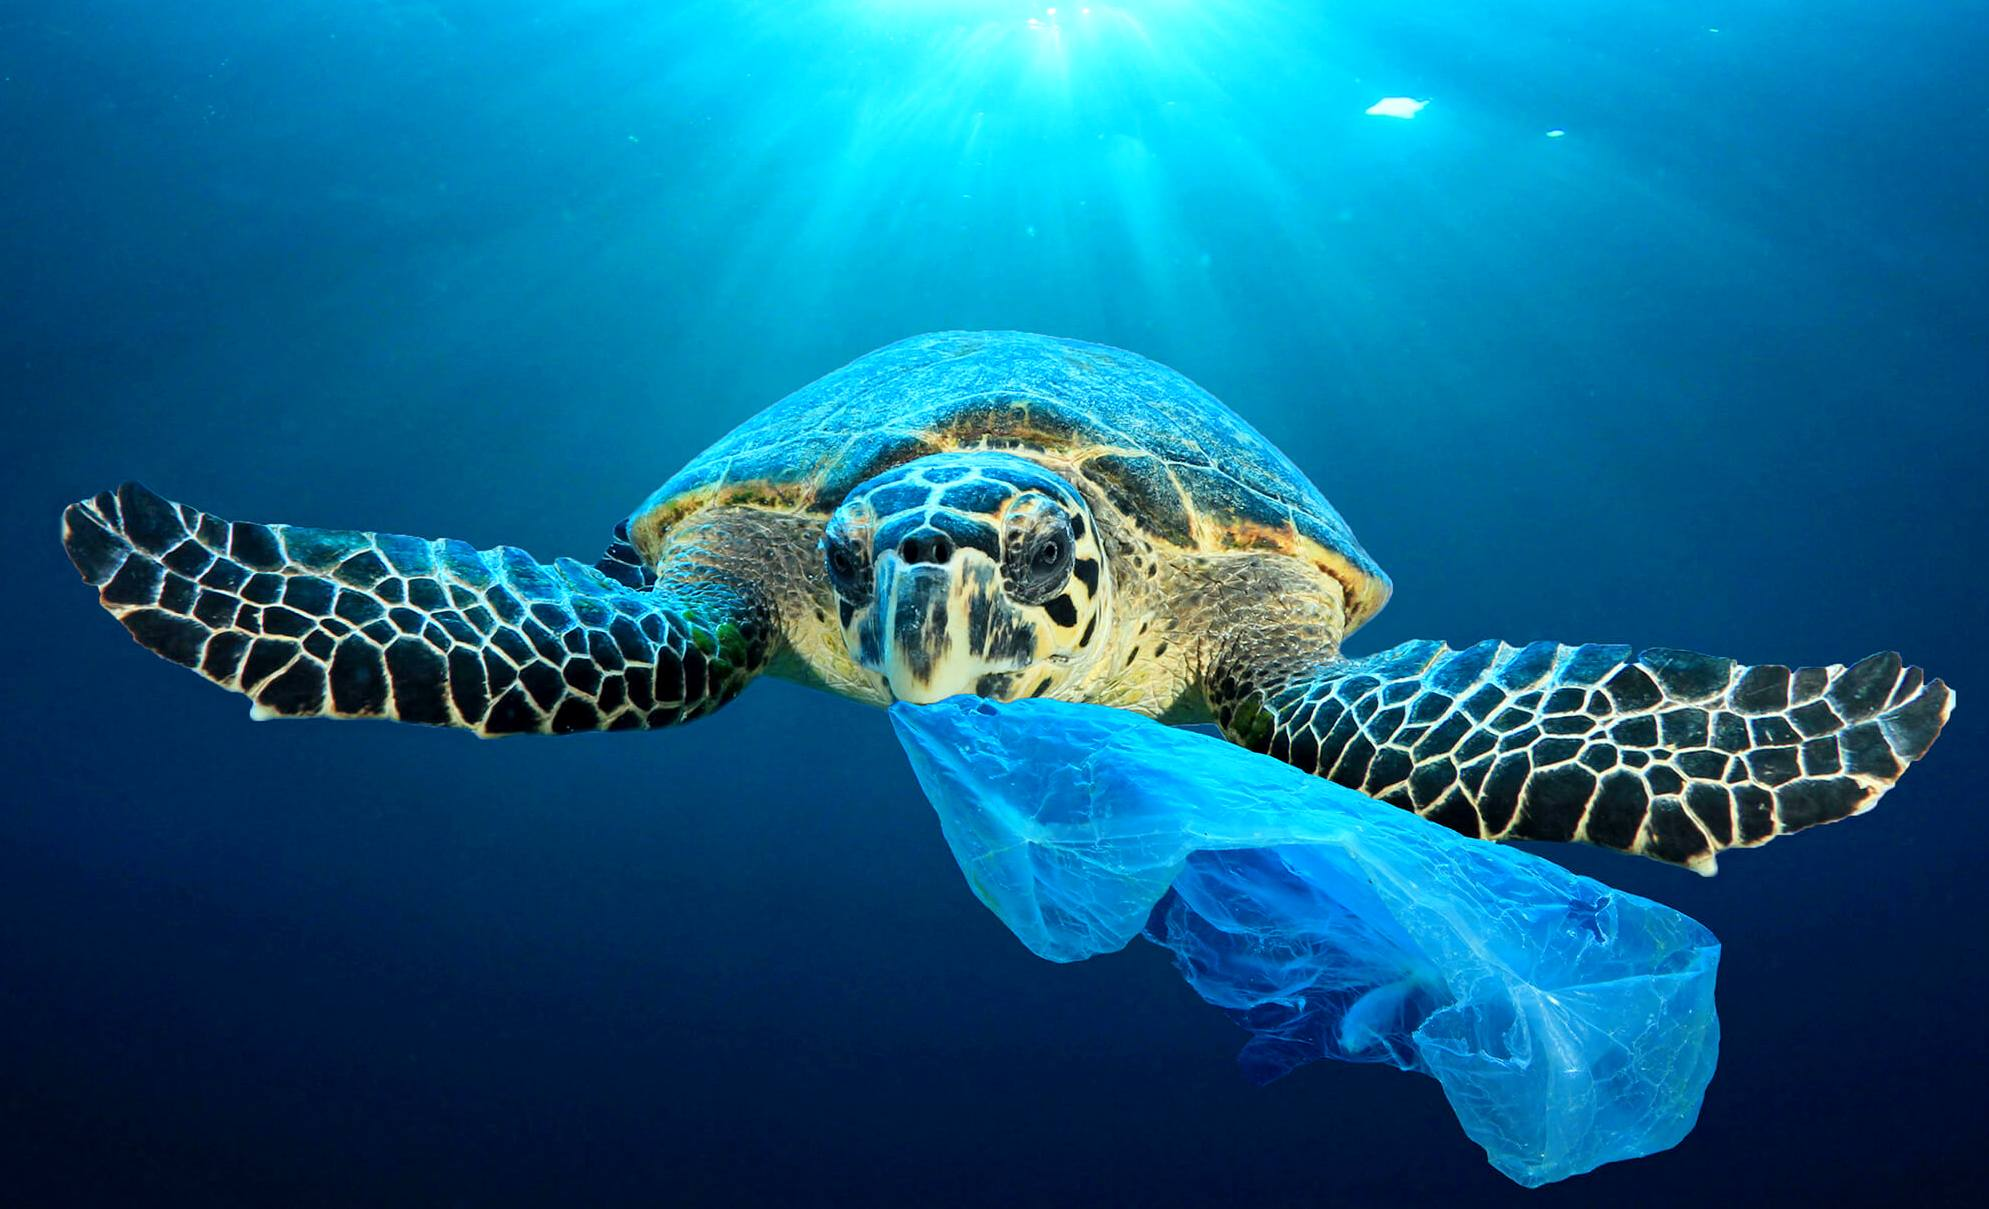 Turtle with a single use plastic bag, that resembles squid